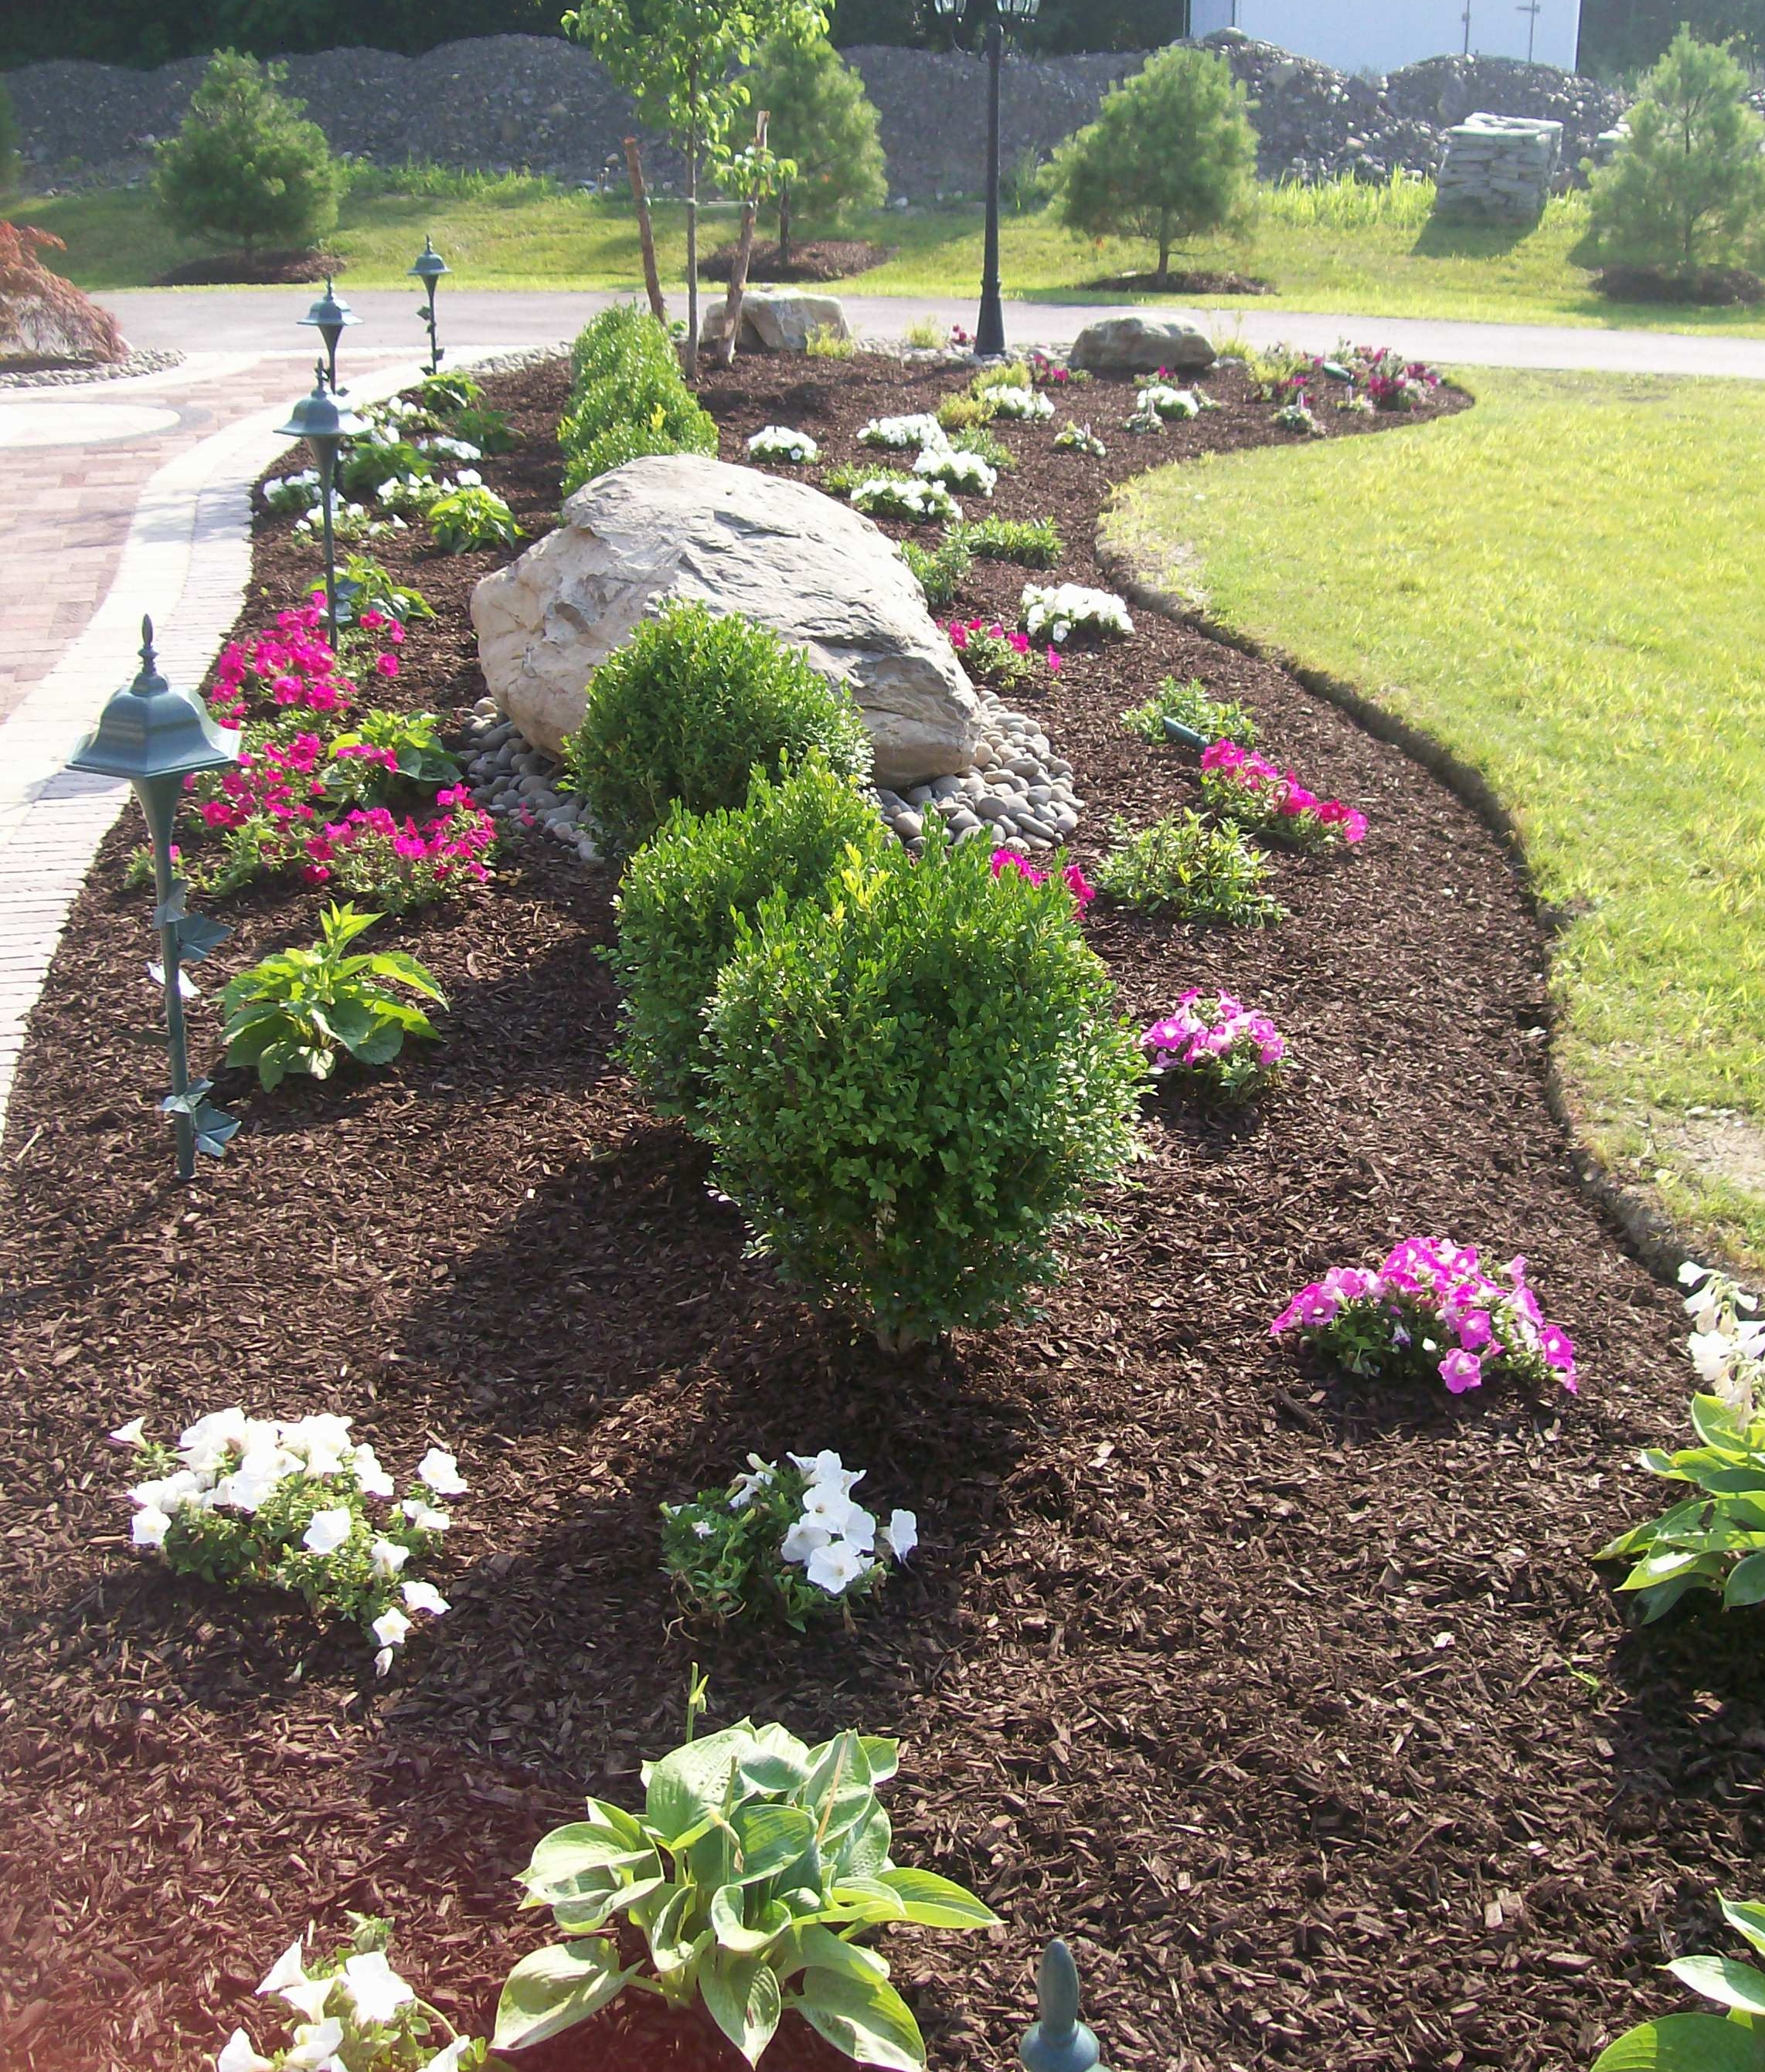 How Lawn Fertilizer Service Can Help Restore Your Neglected Yard in Hopewell Junction, NY